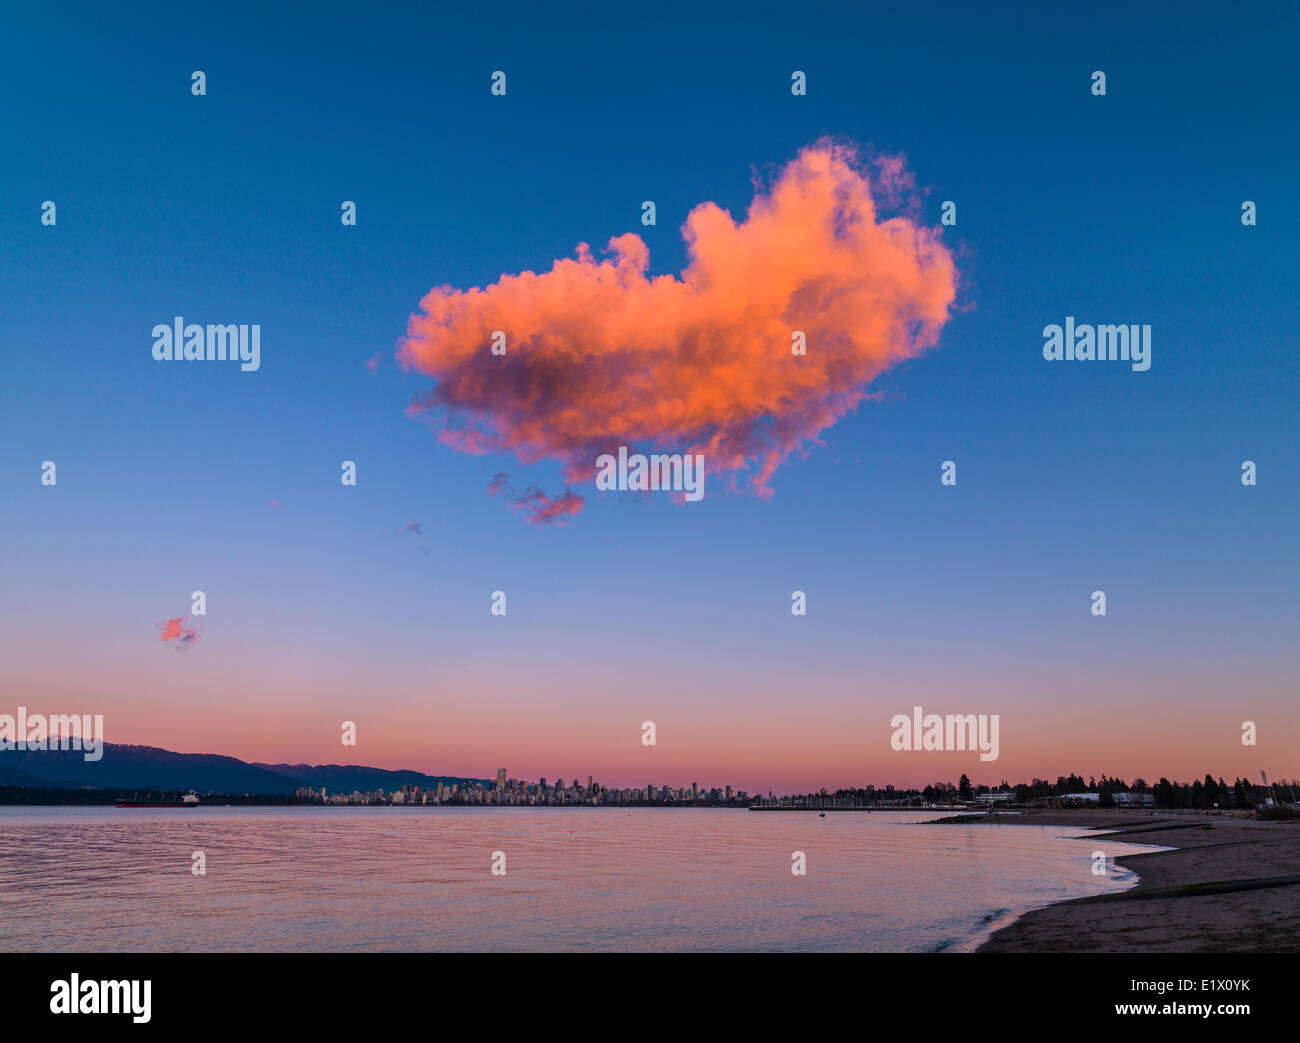 solitary cloud at sunset over Jericho Beach, Vancouver, British Columbia, Canada - Stock Image